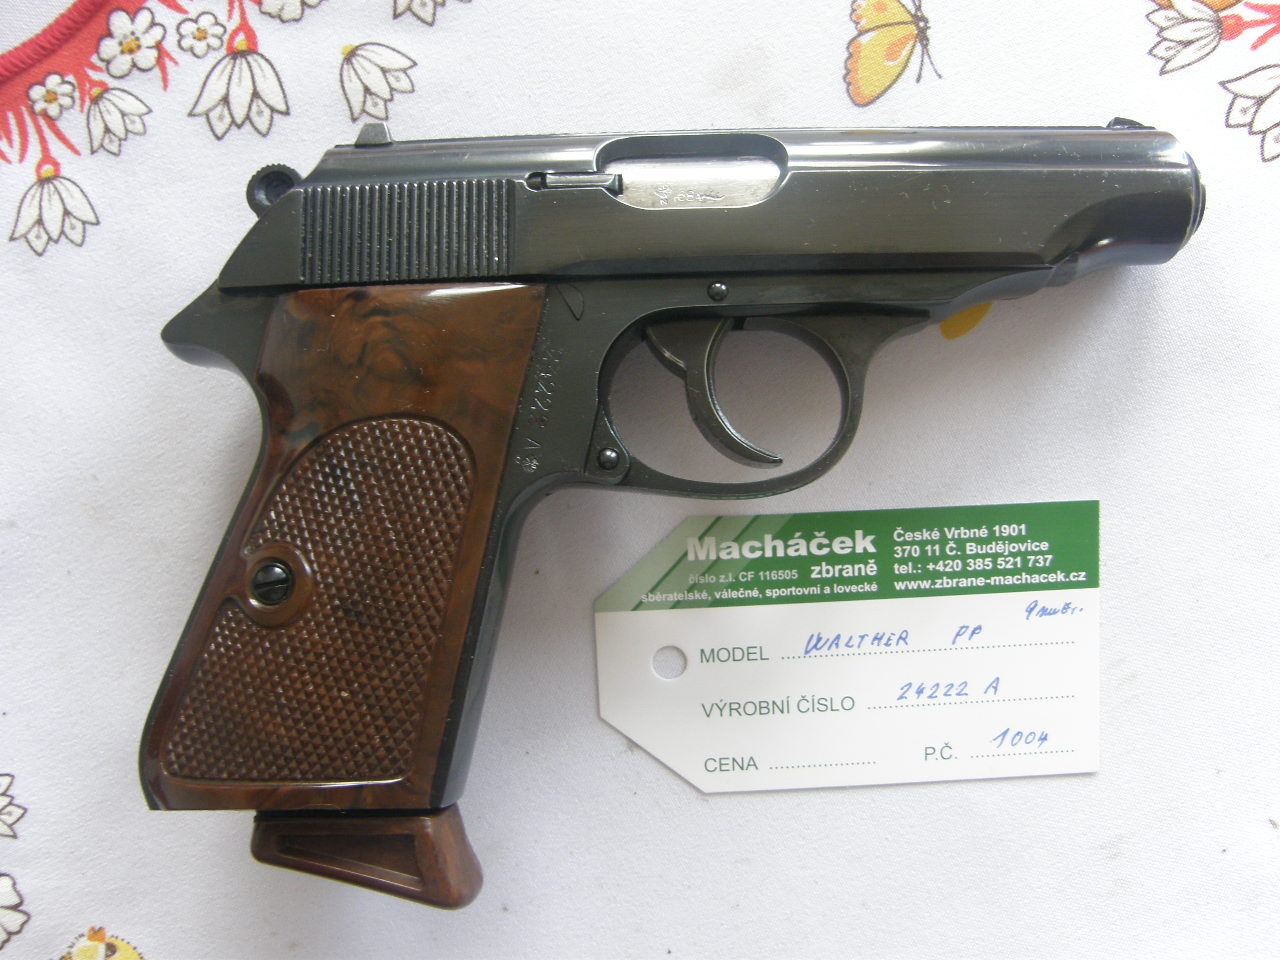 Walther PP v.č.24222 A r.9 mm Br.